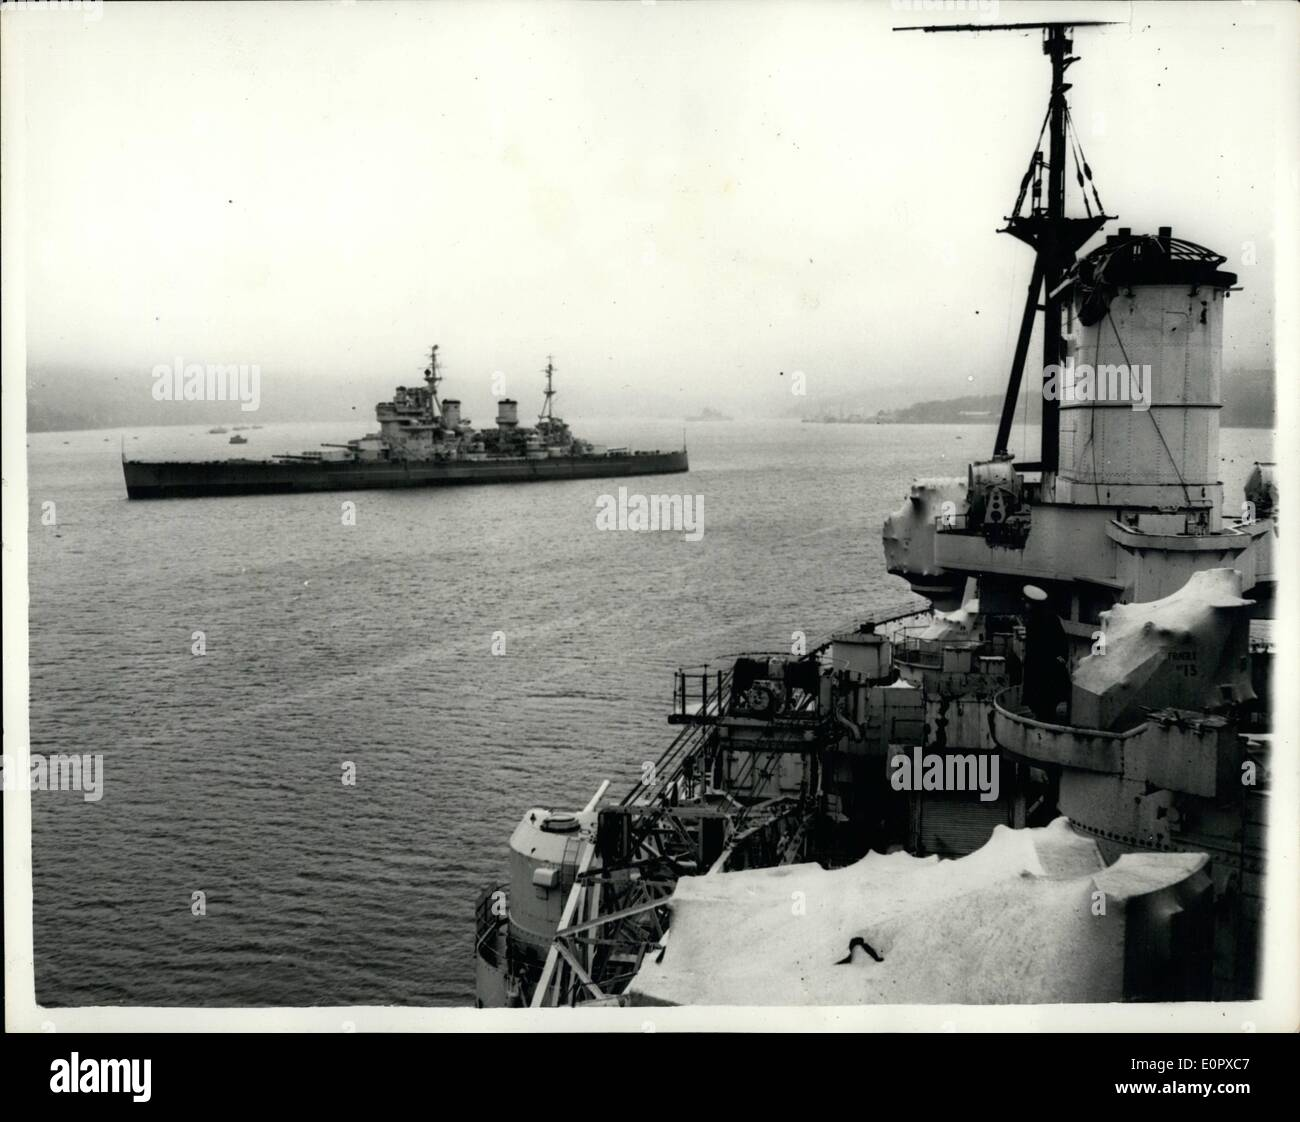 Apr. 04, 1957 - Vessels of The Royal Navy - Ready For Breakers' Yard.. Biggest Chance Ever In Military Policy. Many big ships of the Royal Navy - including H.M.S. King George V and her sister ship H.M.S. Anson - and H.M.S. Duke of York - are among the many lying at anchor at Gareloch on the Clyde - ready for the breakers' yard... They have been condemned by the Defence White Paper which signals the biggest change in Military policy ever made in normal times... Keystone Photo Shows:- Lieut. Neil Pasco who is ''In Command'' of H.M.S - Stock Image